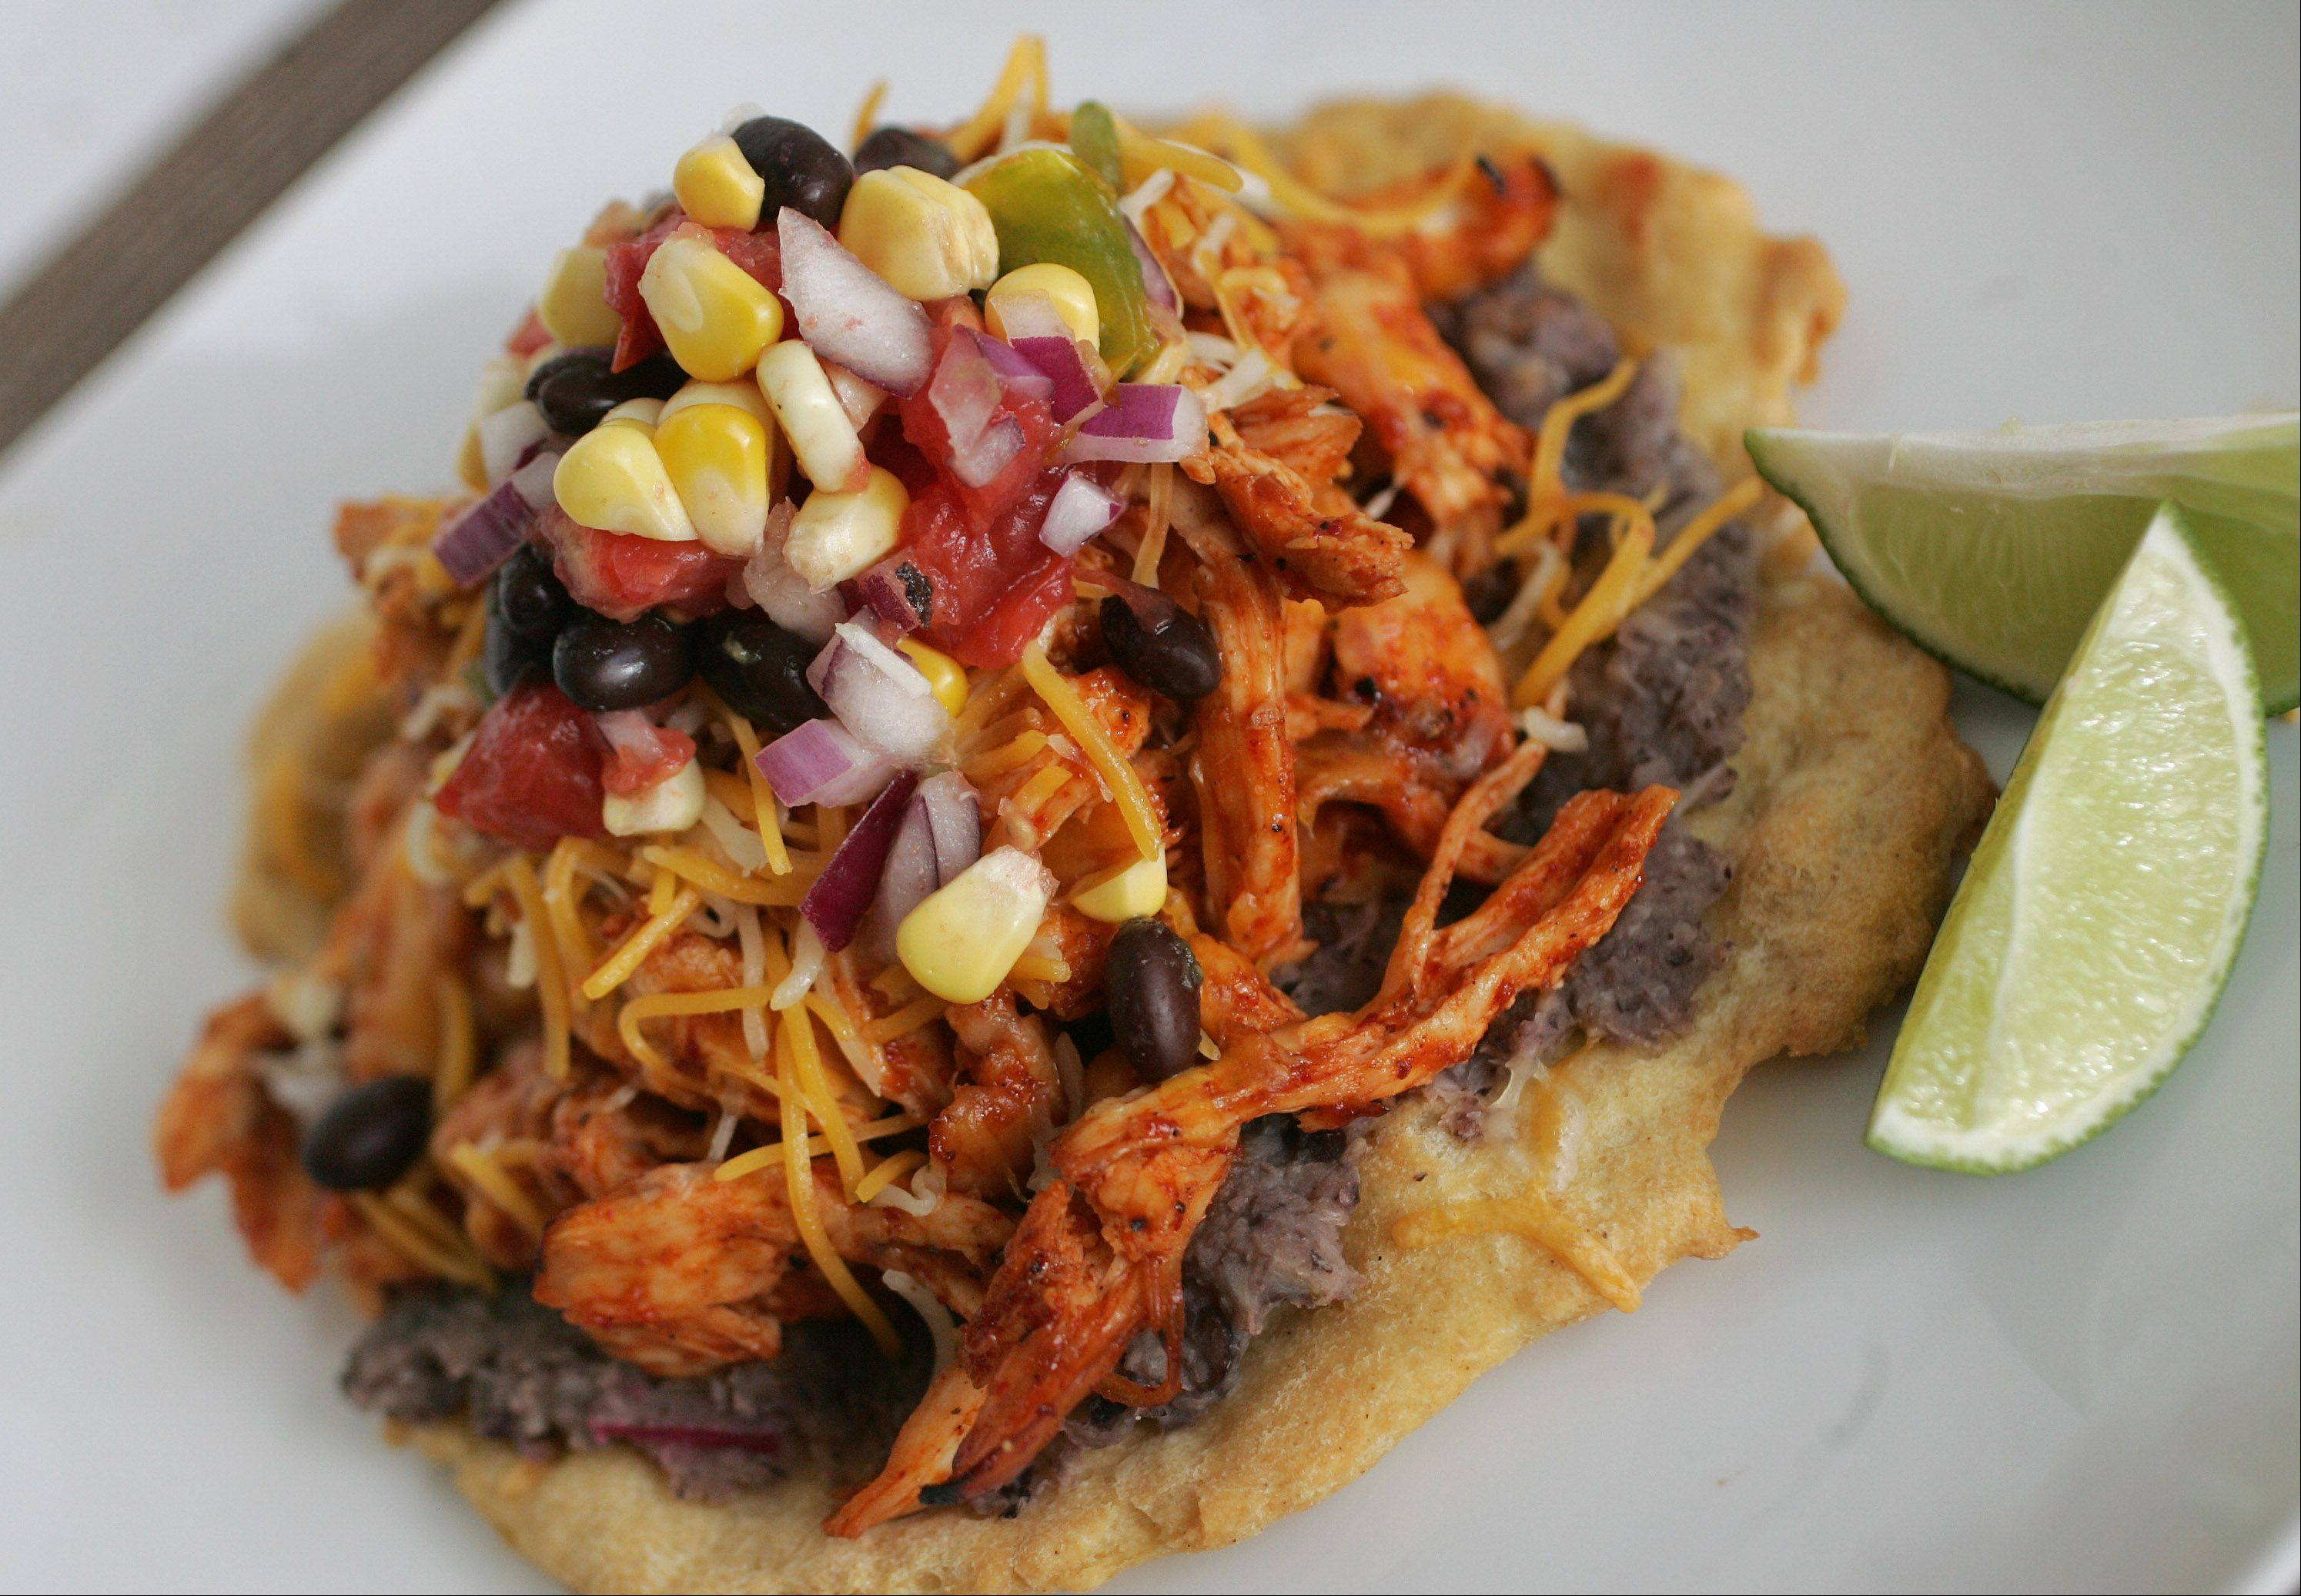 Sarah Lee created crispy tostadas from gluten-free pizza dough topped with spicy shredded chicken and refried salsify root.